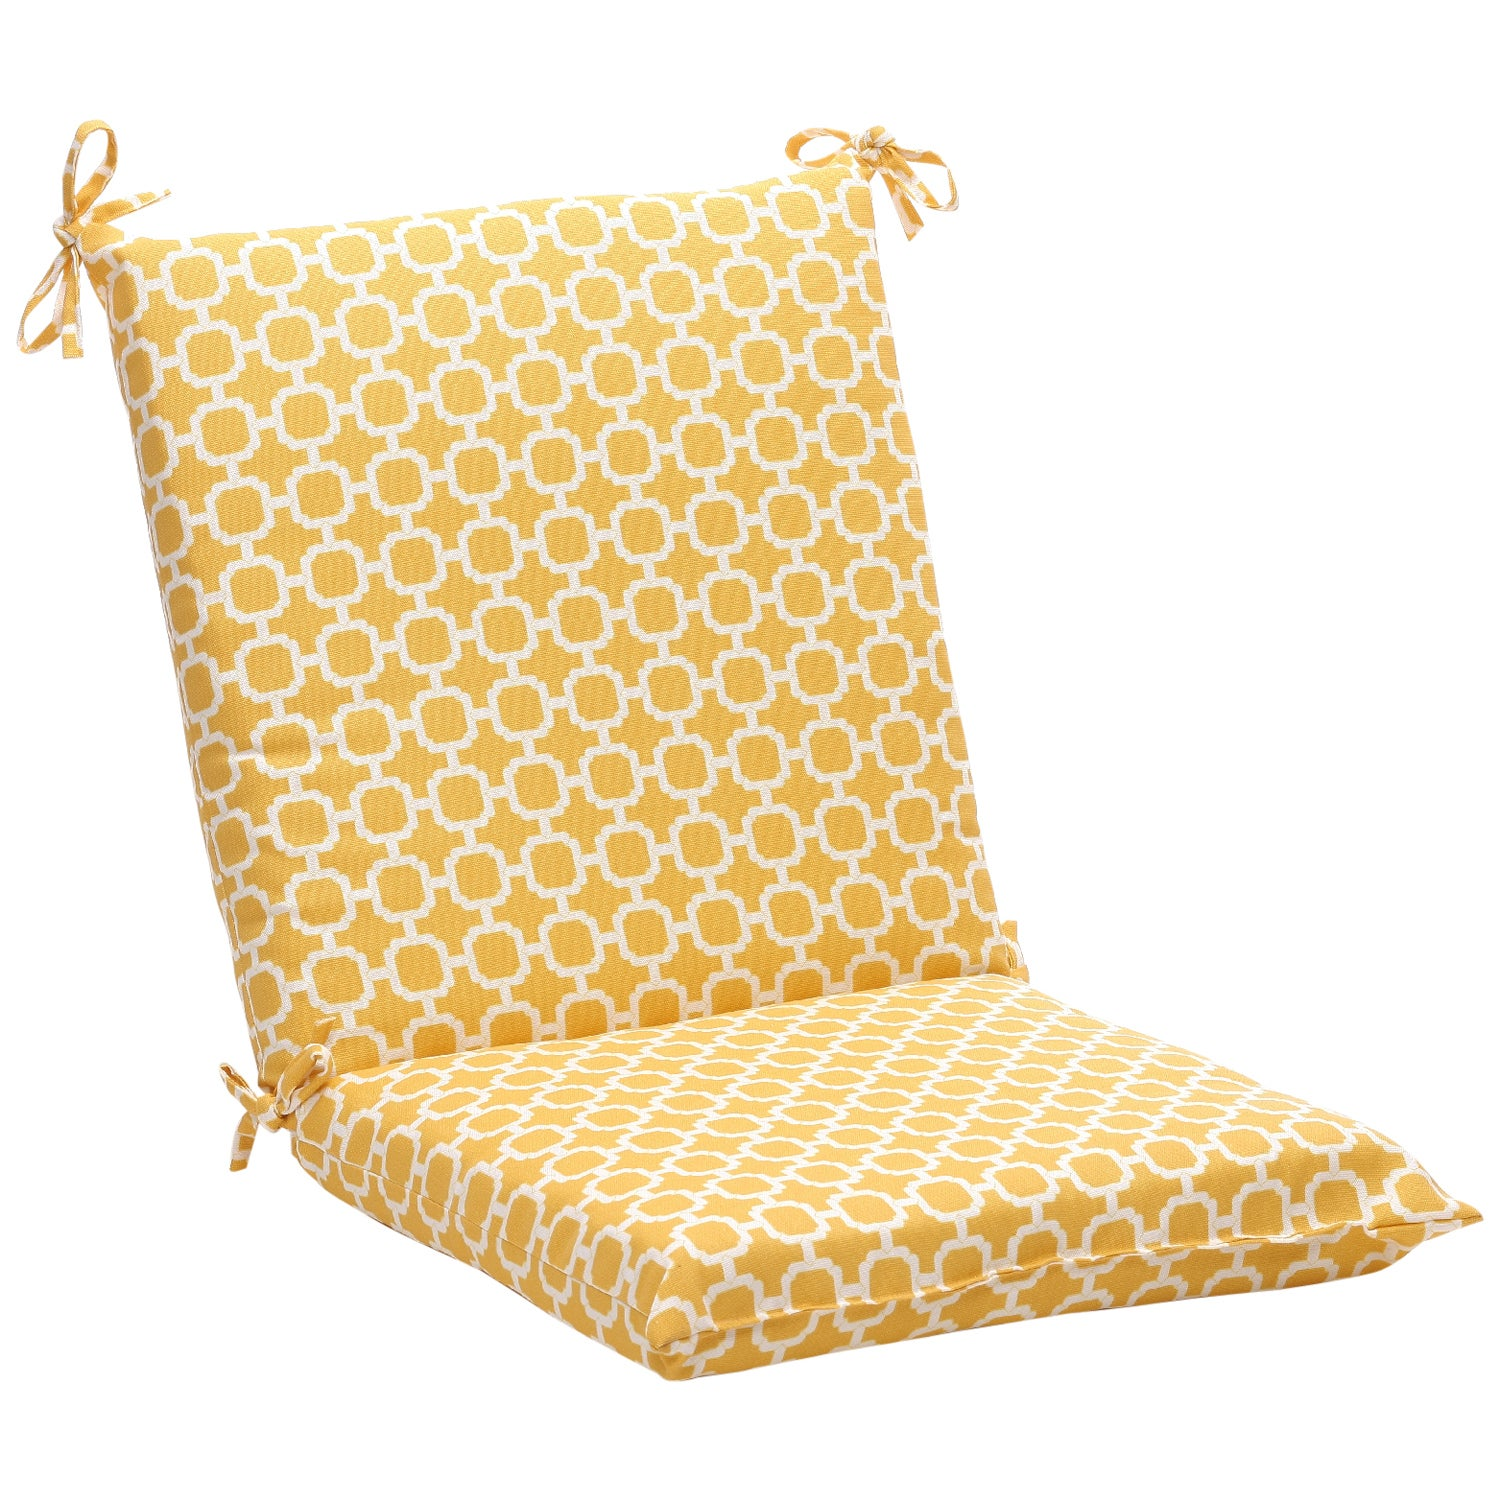 Squared Yellow White Geometric Outdoor Chair Cushion